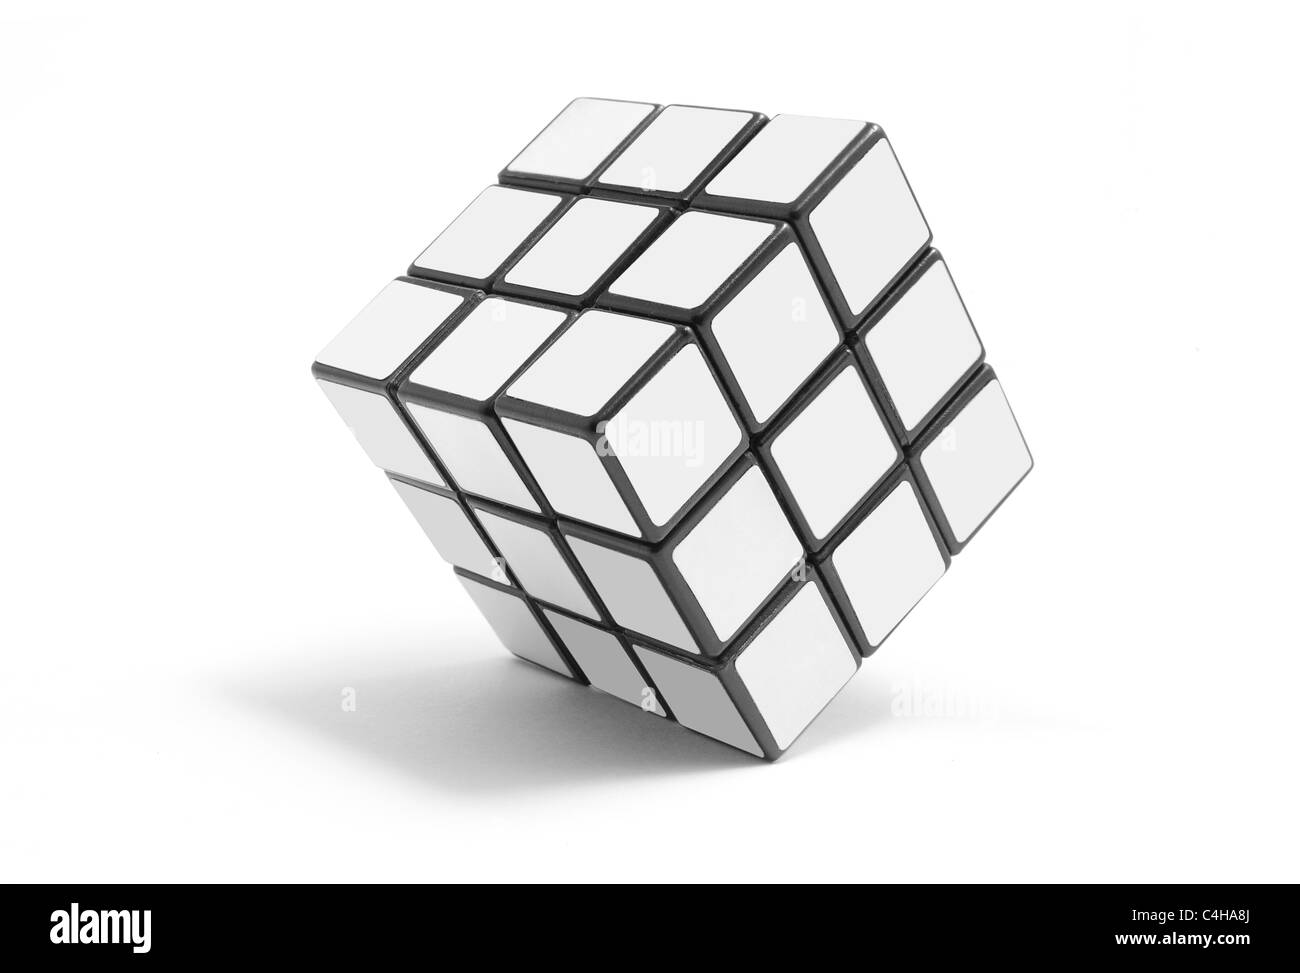 Puzzle Cube - Stock Image